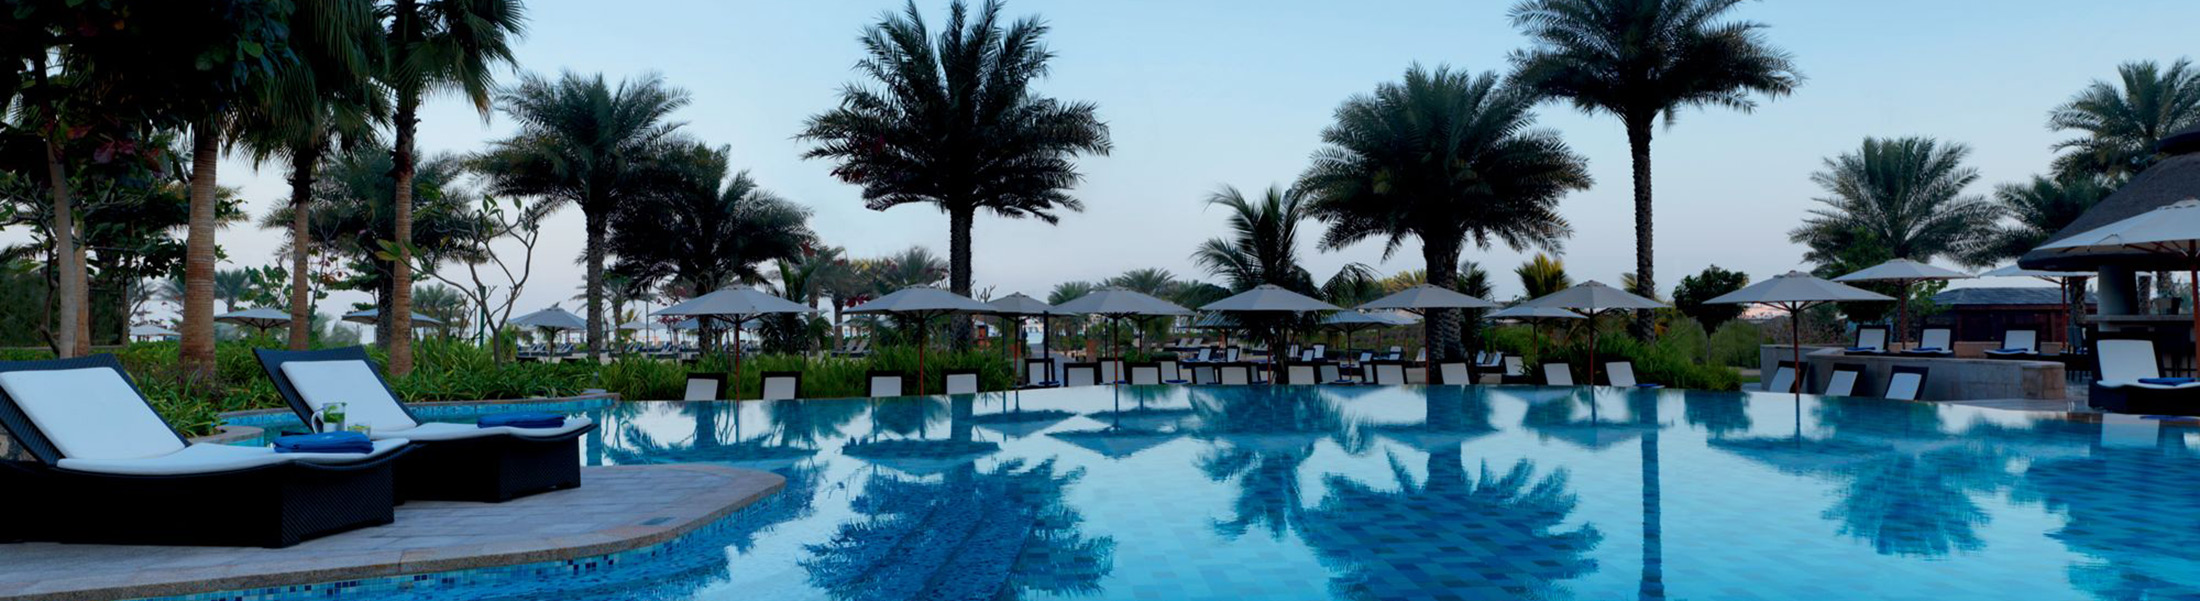 Infinity Pool at Ritz-Carlton Dubai